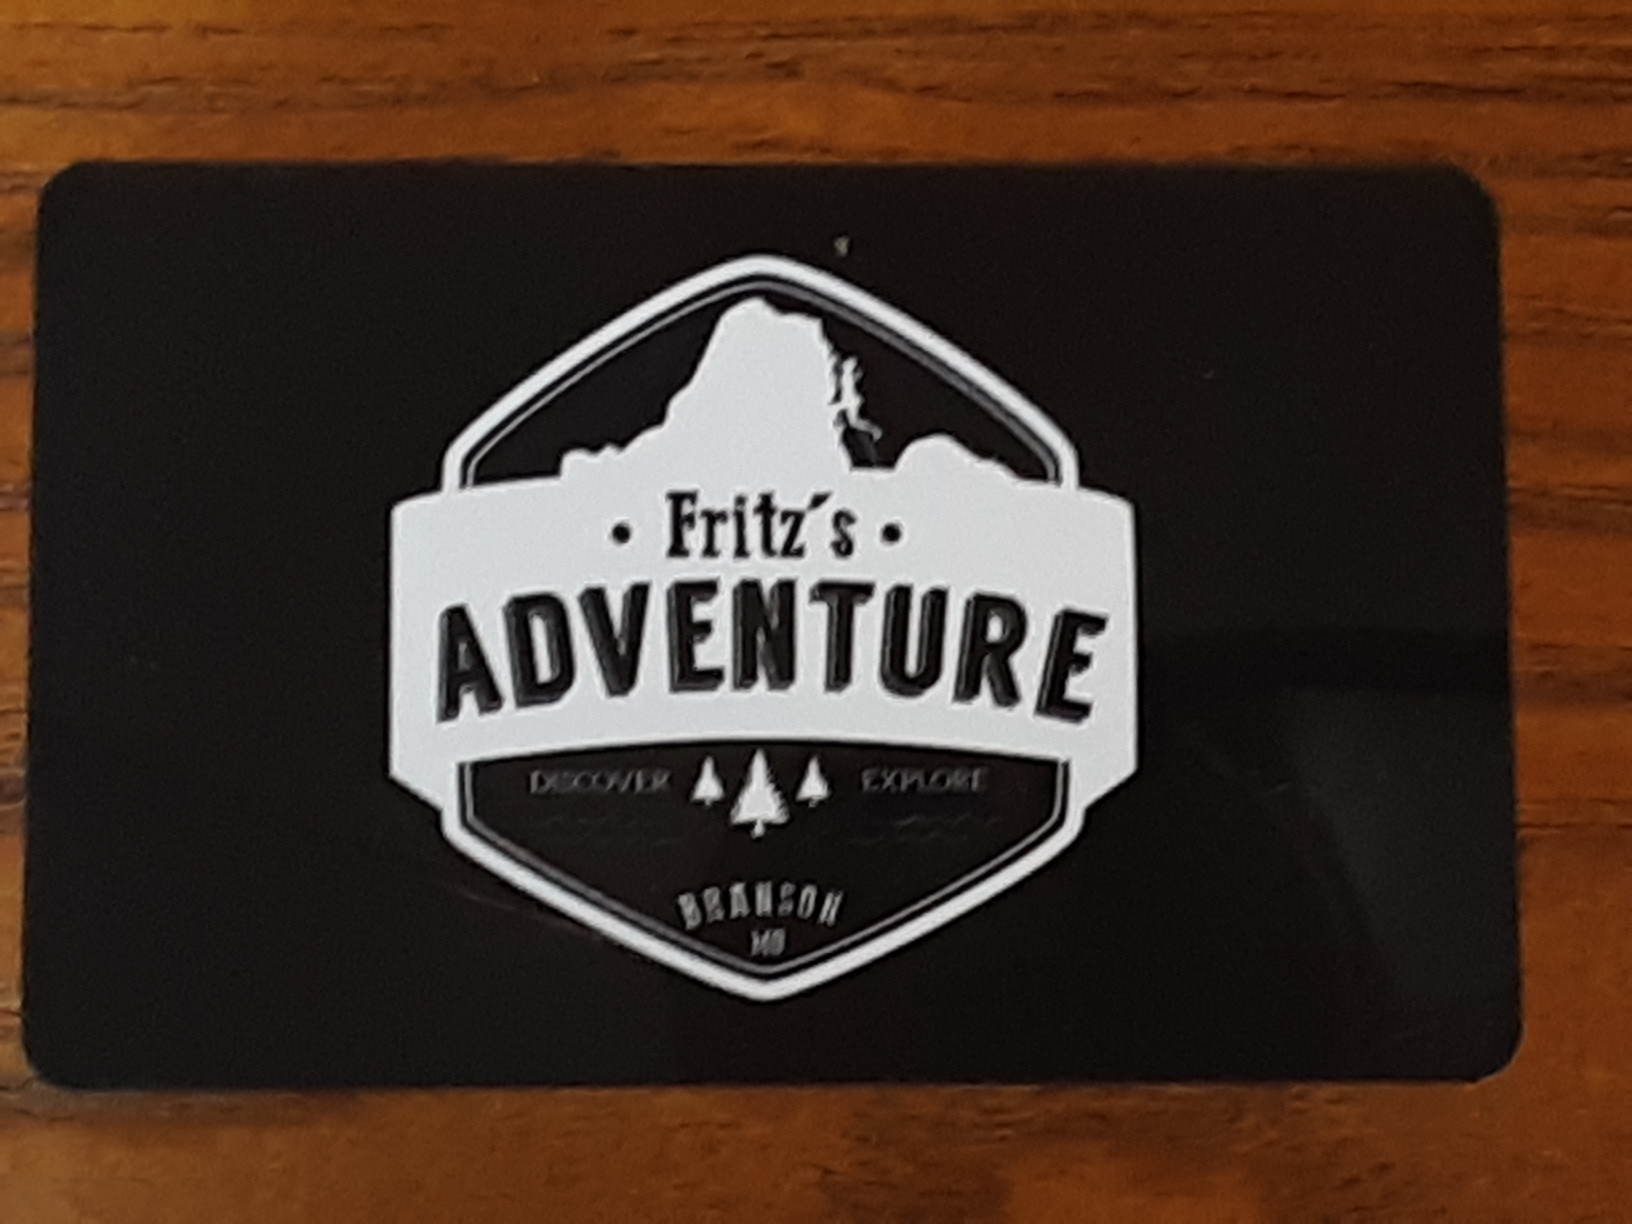 Fritz's Adventure Branson Missouri gift card